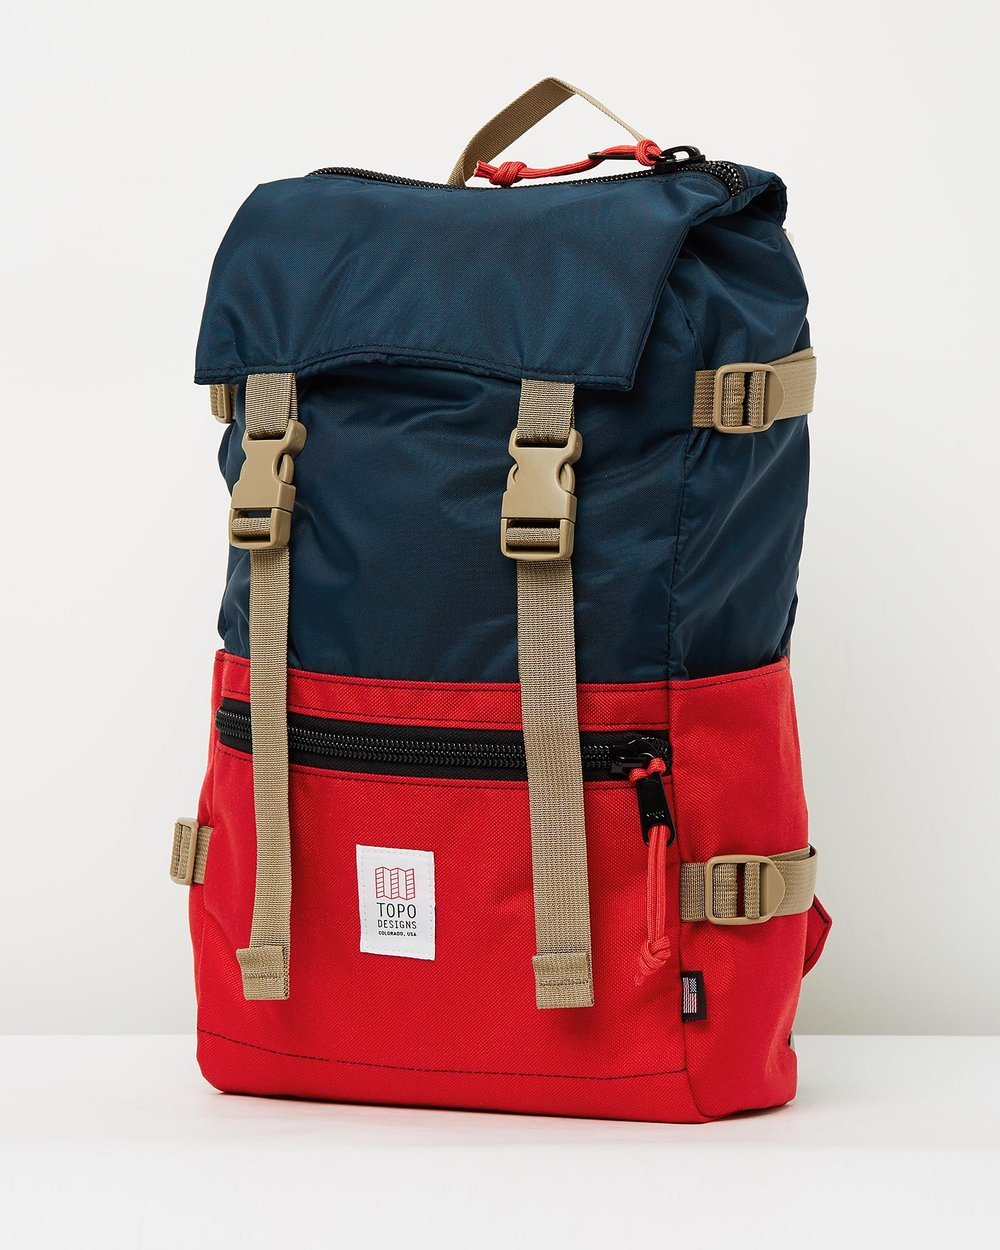 36be70d32 Rover Pack by Topo Designs Online | THE ICONIC | Australia